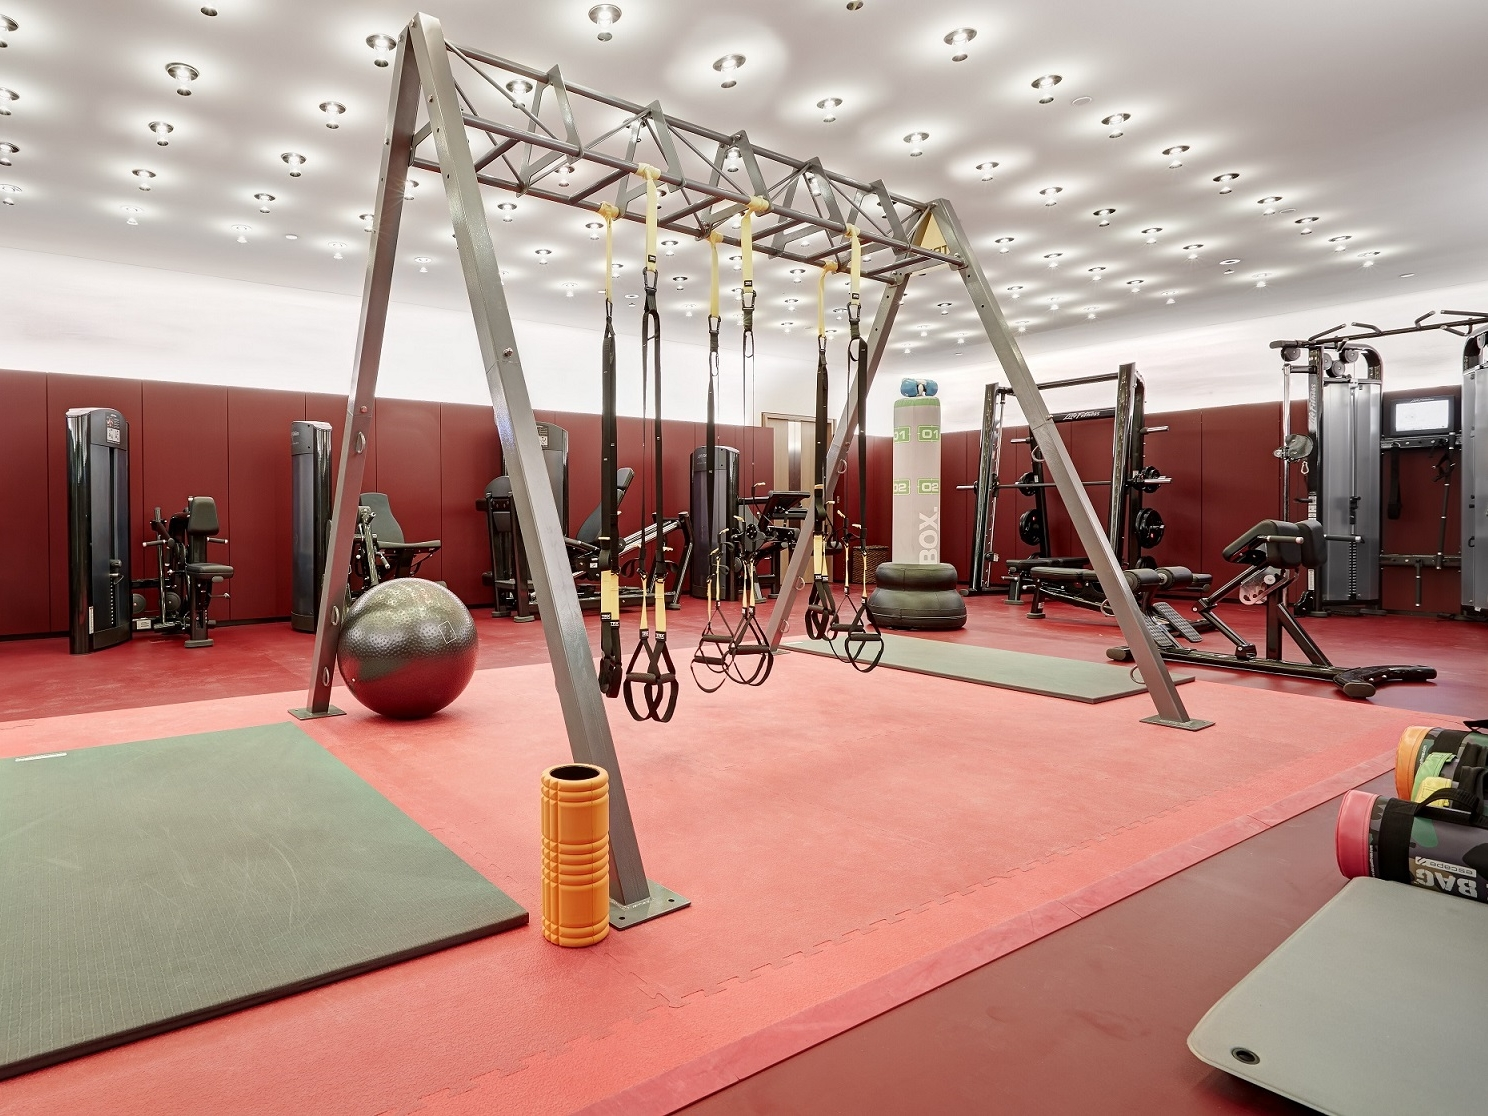 akasha holistic wellbeing gym hotel cafe royal london